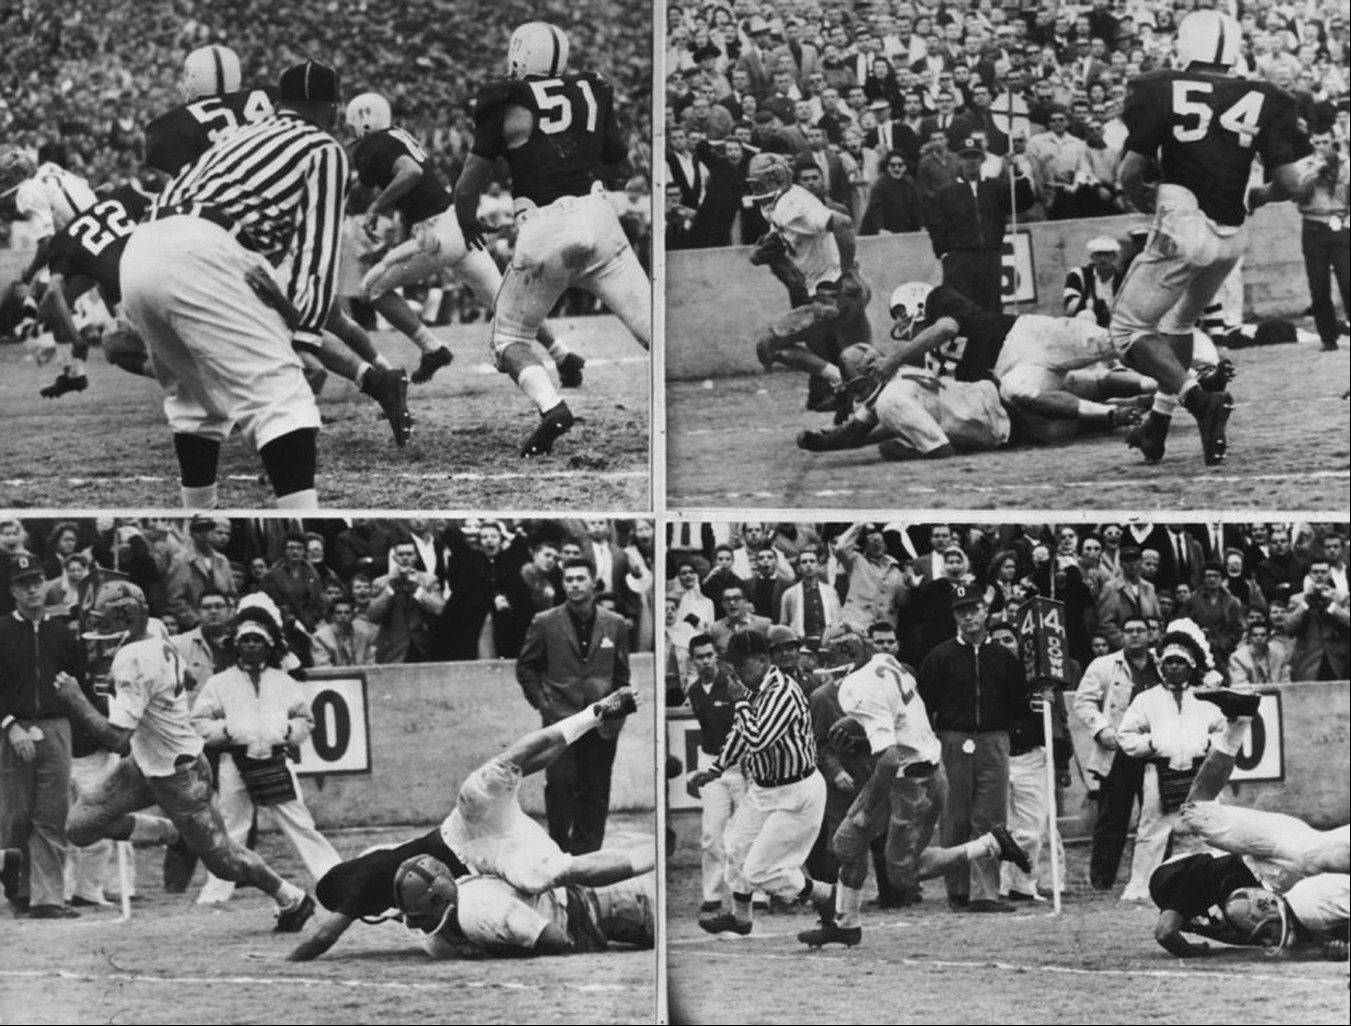 Notre Dame's Dick Lynch runs for the game's only touchdown during the fourth quarter against Oklahoma in Norman, Okla. Notre Dame has had some great victories in its 125 years of playing college football, yet none was as improbable as the 7-0 victory at second-ranked Oklahoma in 1957. That victory ended the Sooners' NCAA-record winning streak at 47 games and came just a season after the Sooners beat the Irish 40-0 in South Bend, still the most lopsided home loss in Notre Dame history.